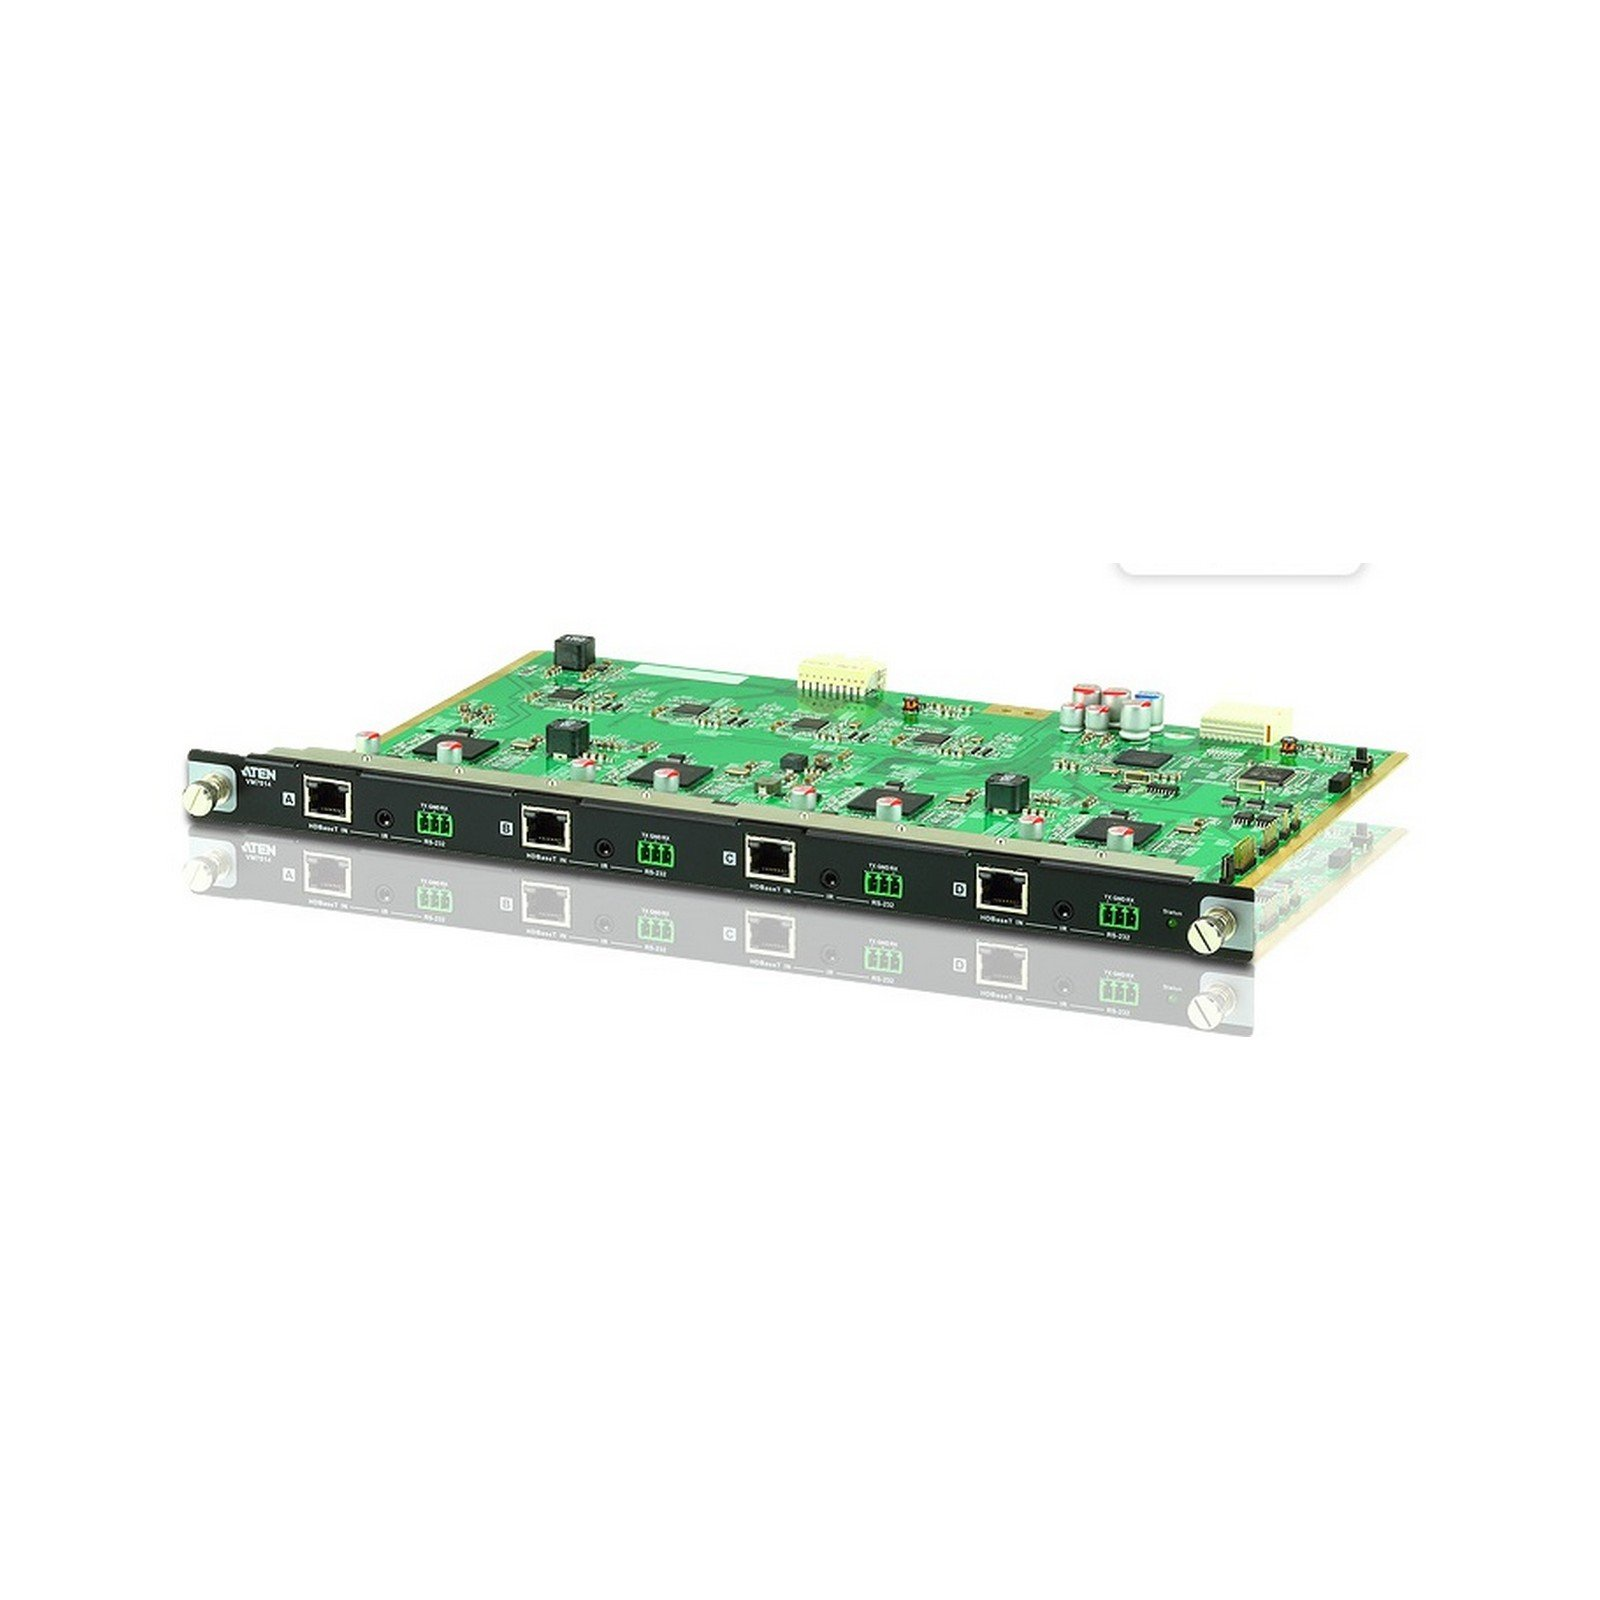 Aten VM7514 | 4 Port HDBaseT Input Board Interface by ATEN (Image #1)